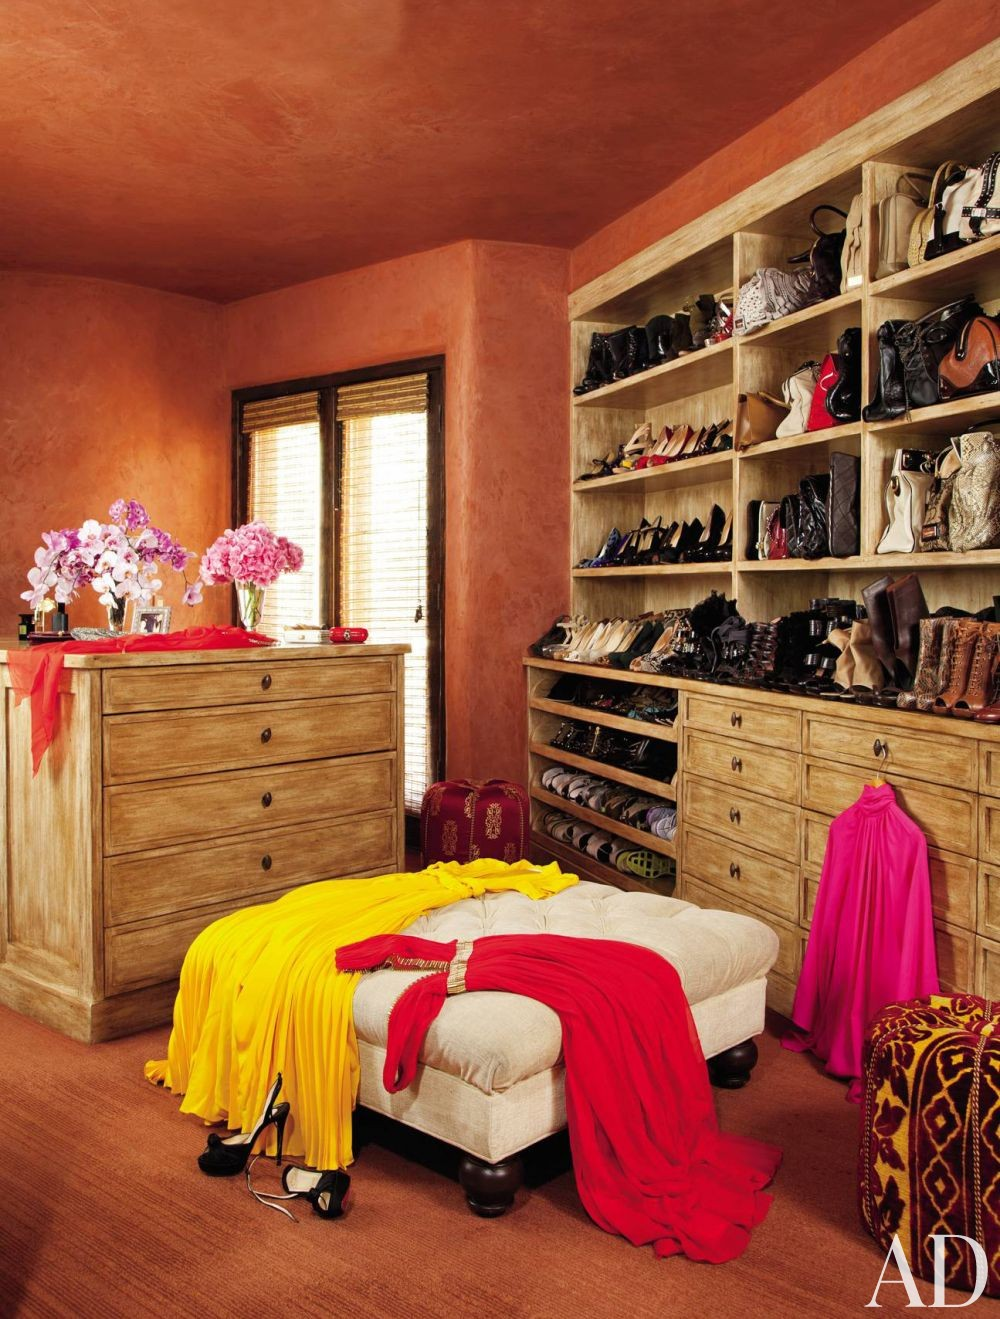 Exotic Dressing Room/Closet by Judith Lance and Stephen Samuelson in Calabasas, California